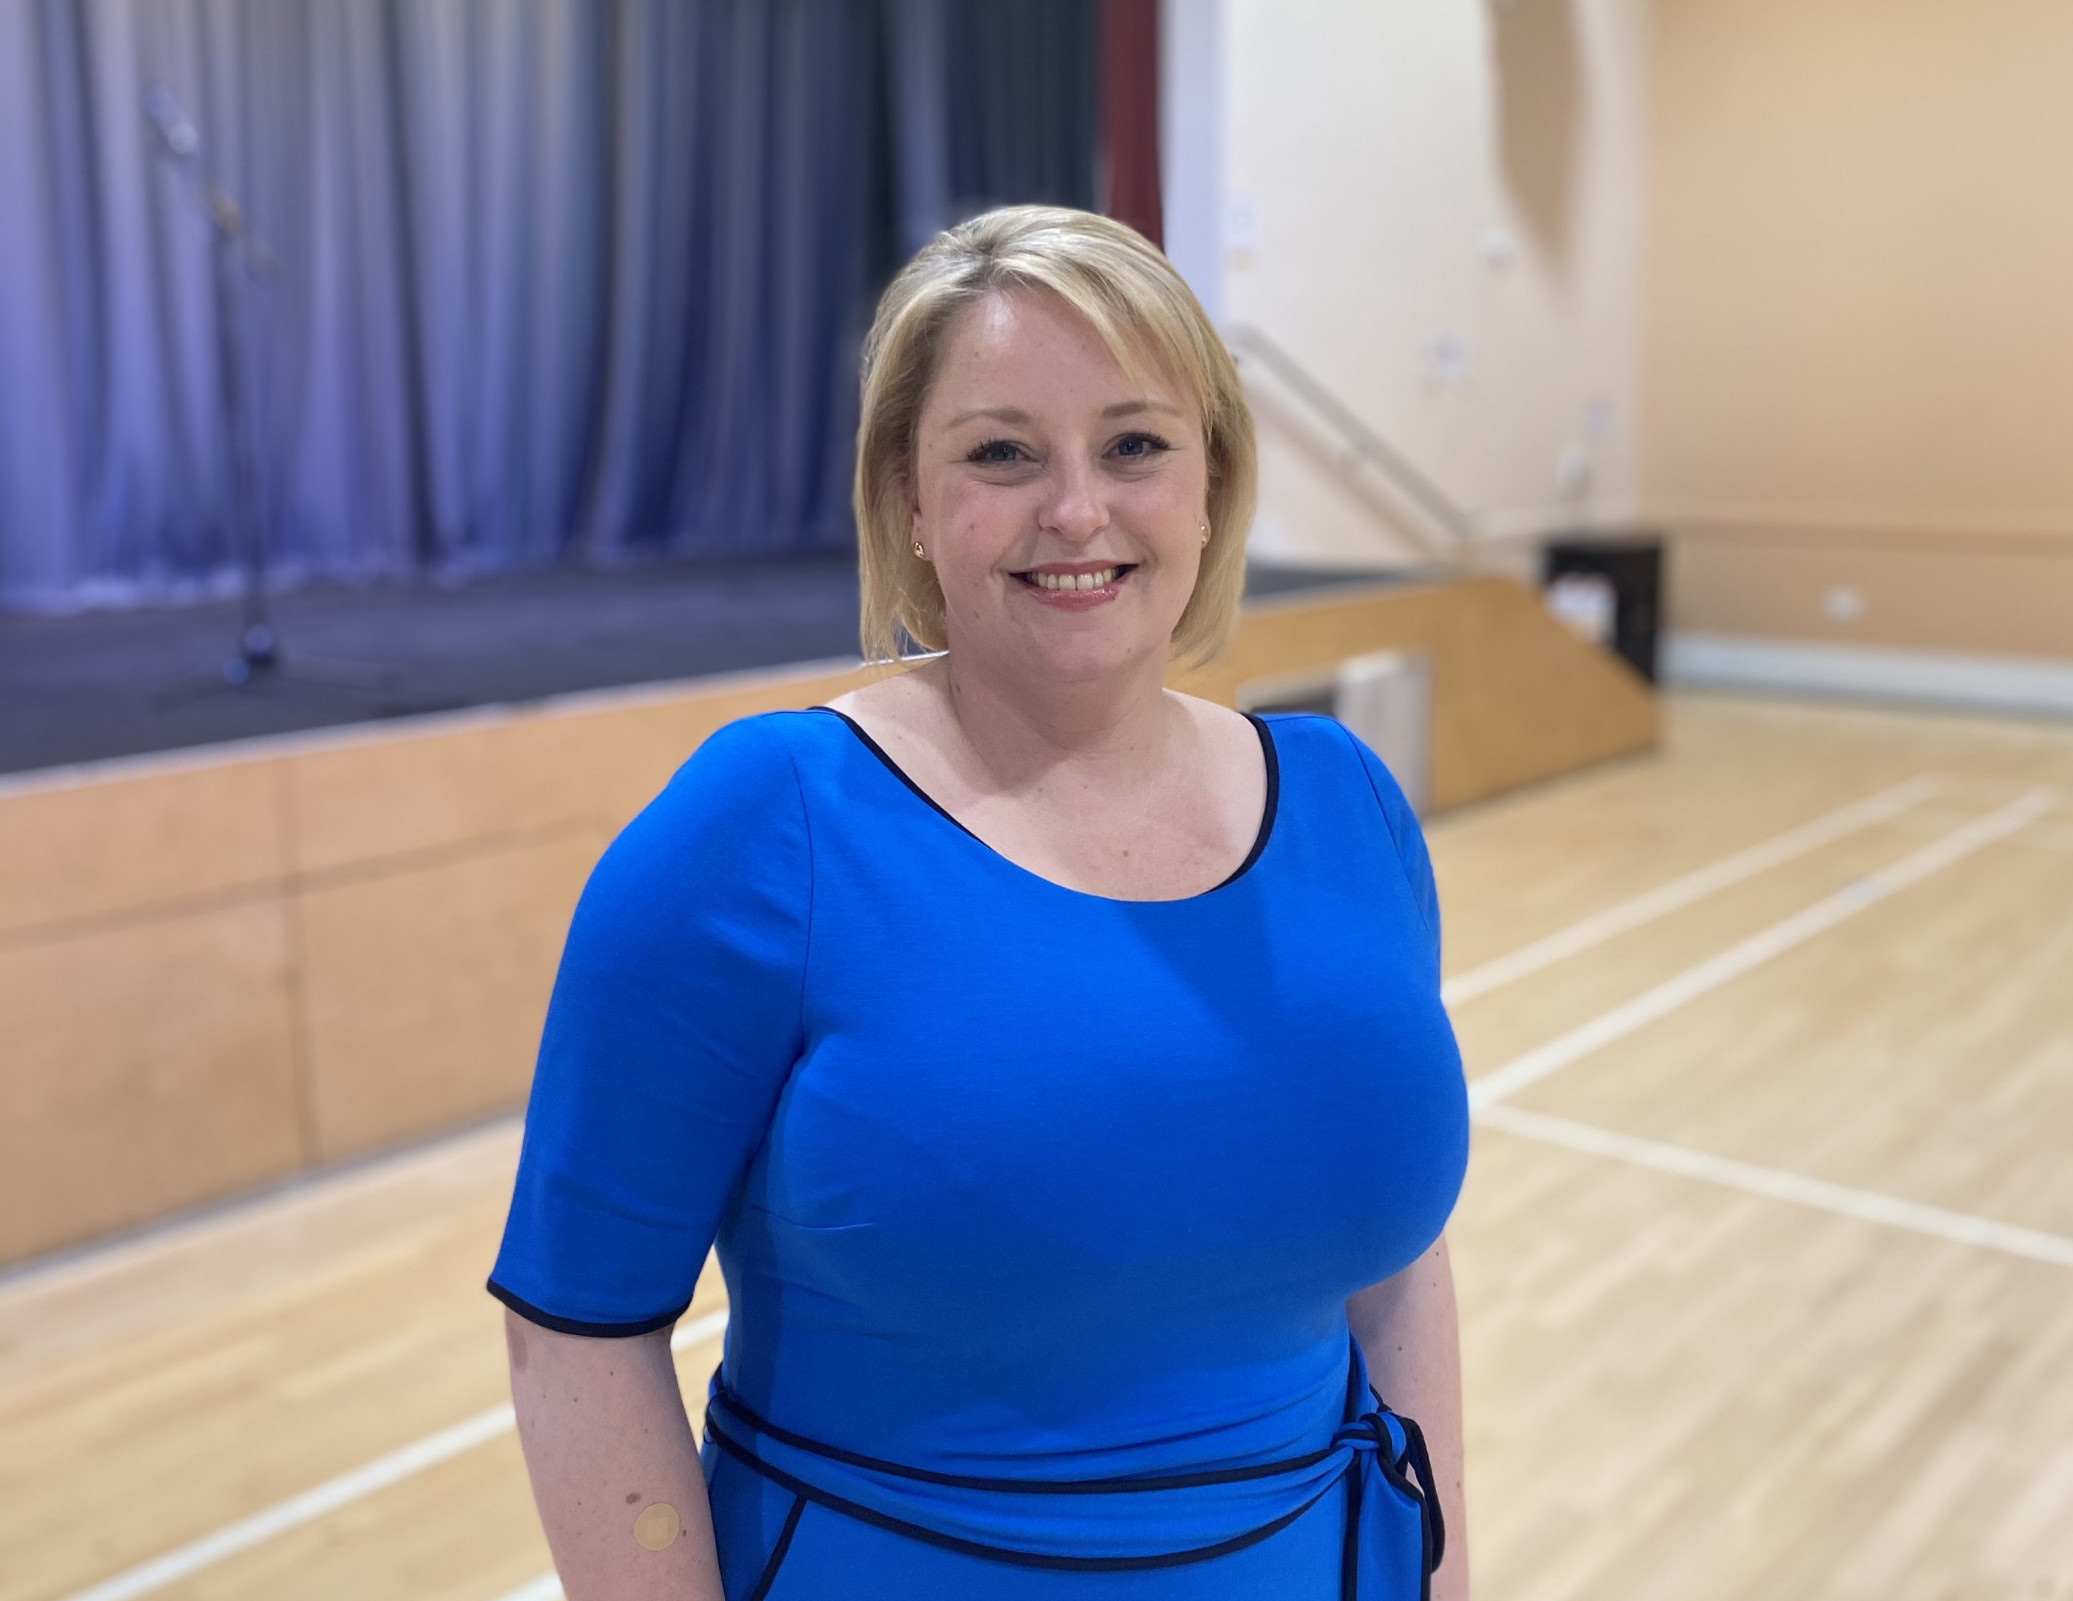 Lisa Townsend elected as next Police and Crime Commissioner for Surrey